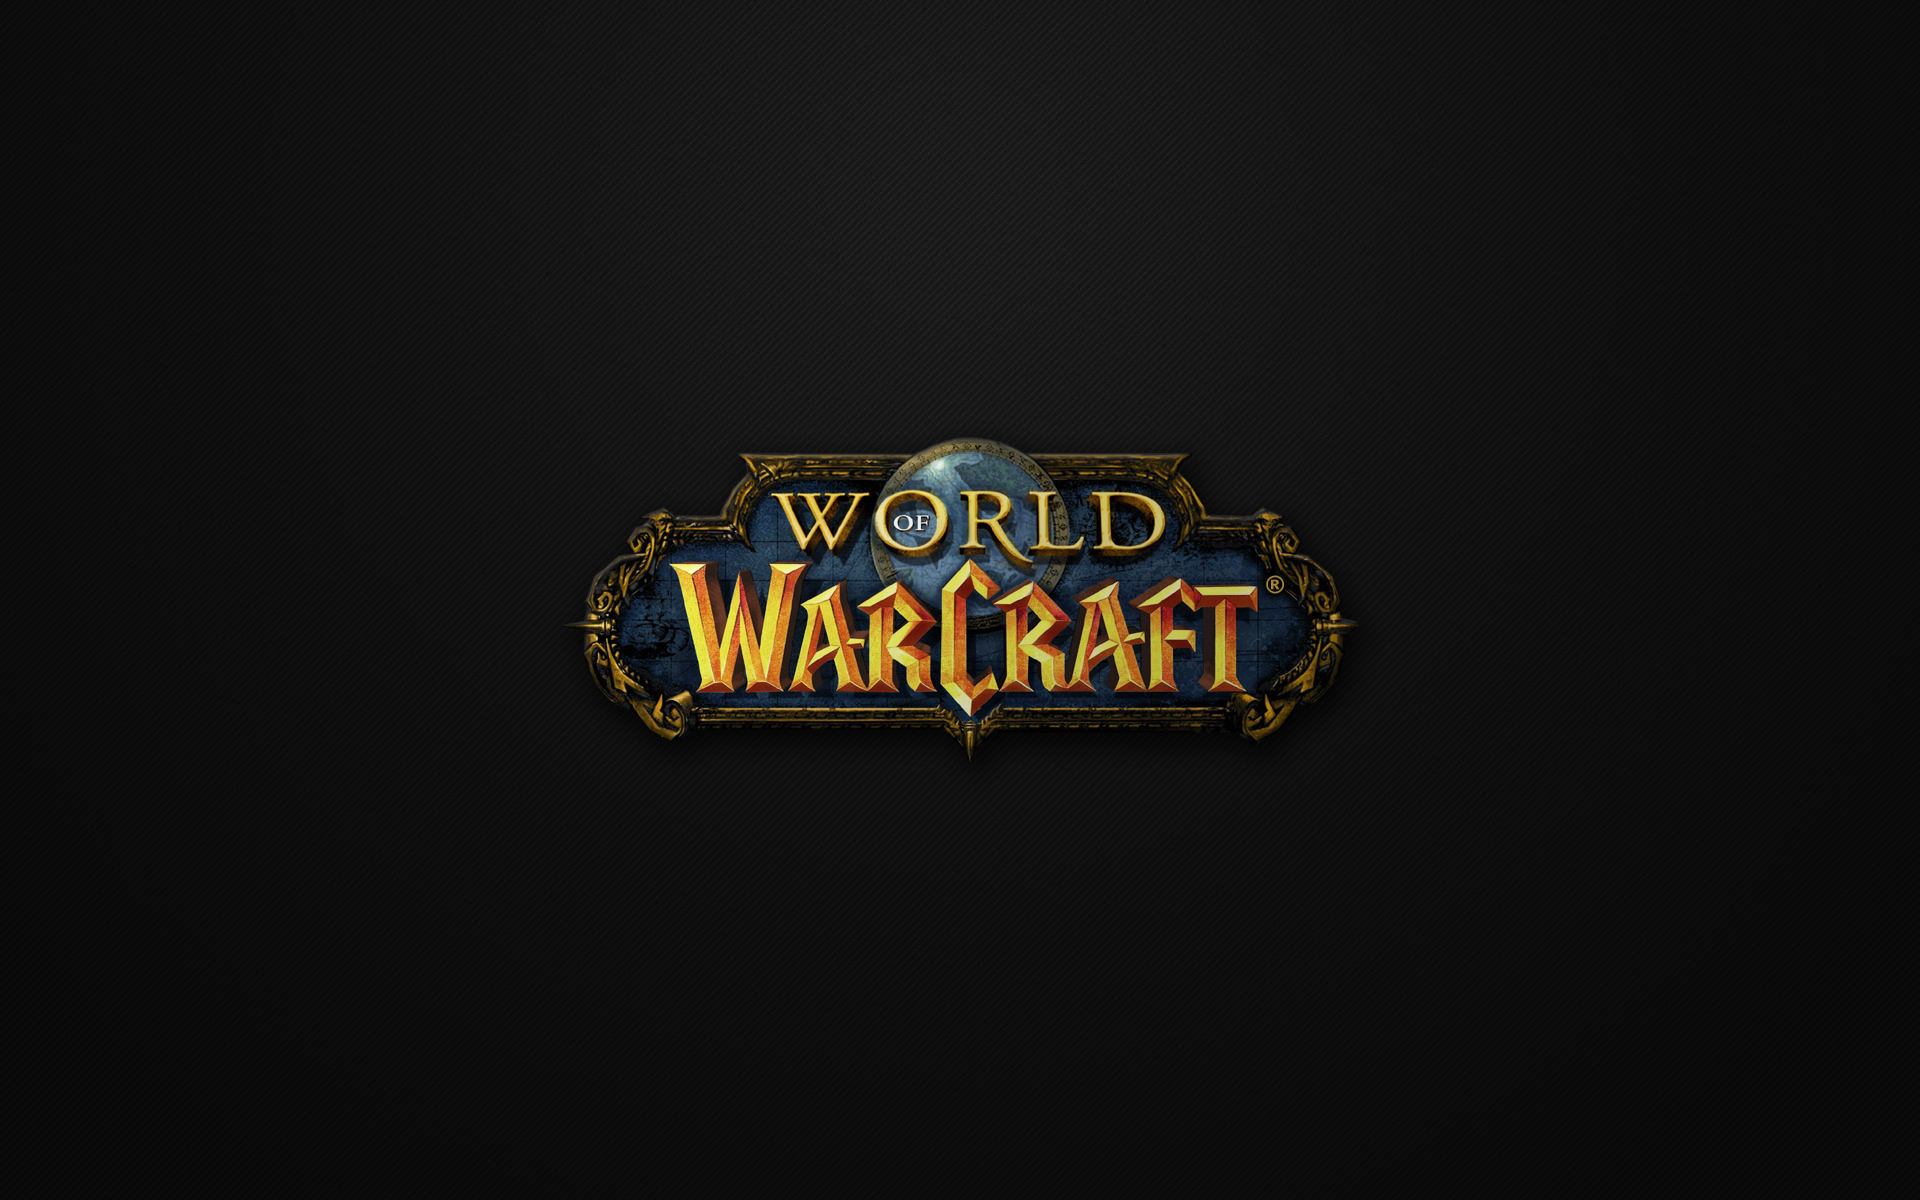 Free Download World Of Warcraft Wallpaper 1920x1080 Alliance World Of Warcraft 1920x1200 For Your Desktop Mobile Tablet Explore 50 World Of Warcraft Alliance Wallpaper World Of Warcraft Alliance Wallpaper